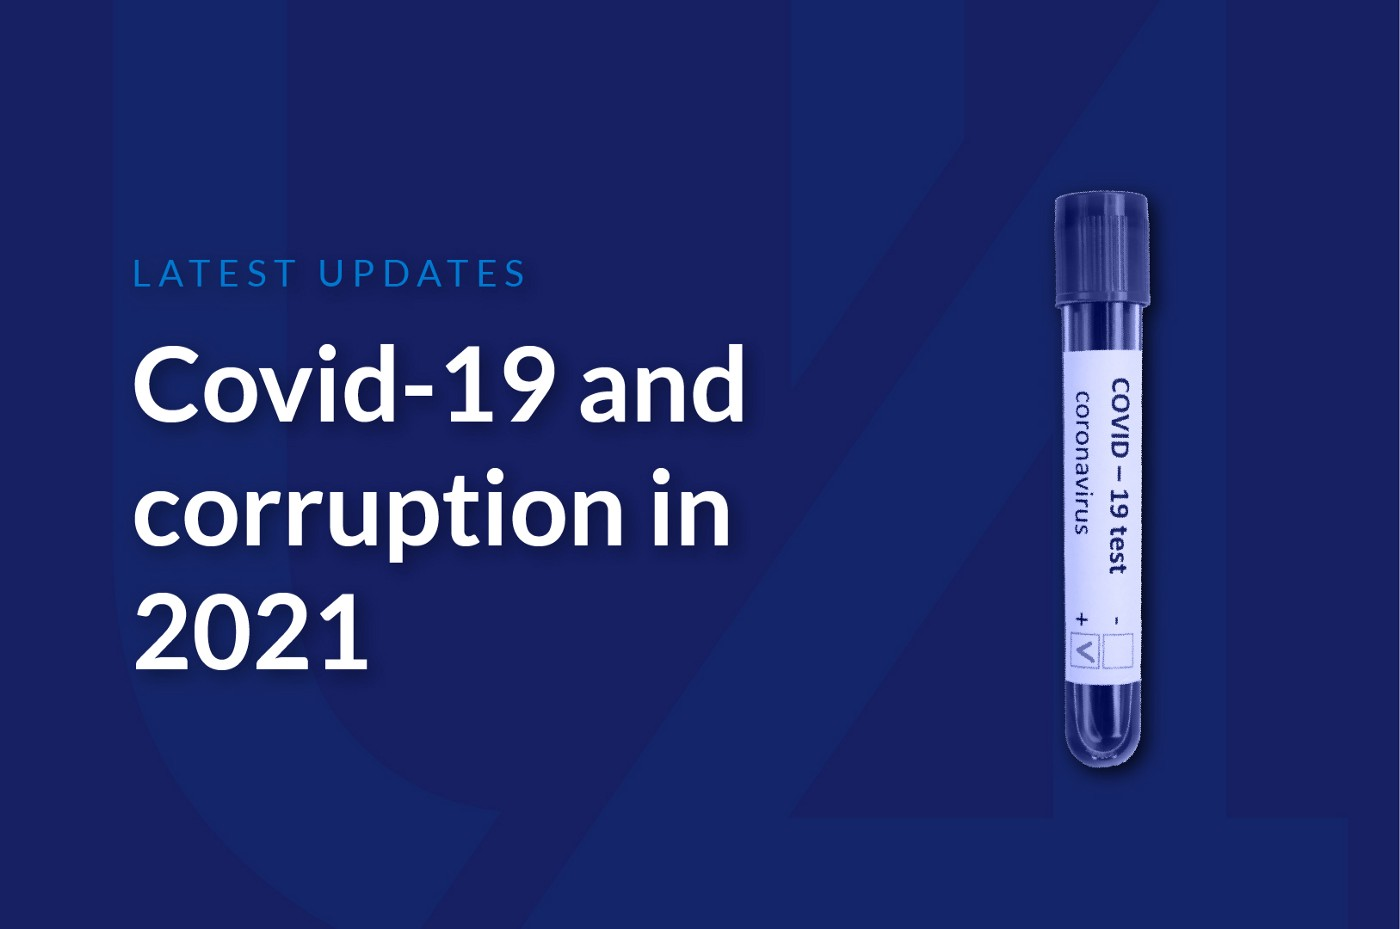 An illustration of a single tube containing a Covid-19 test, alongside the blog post title: Covid-19 and corruption in 2021